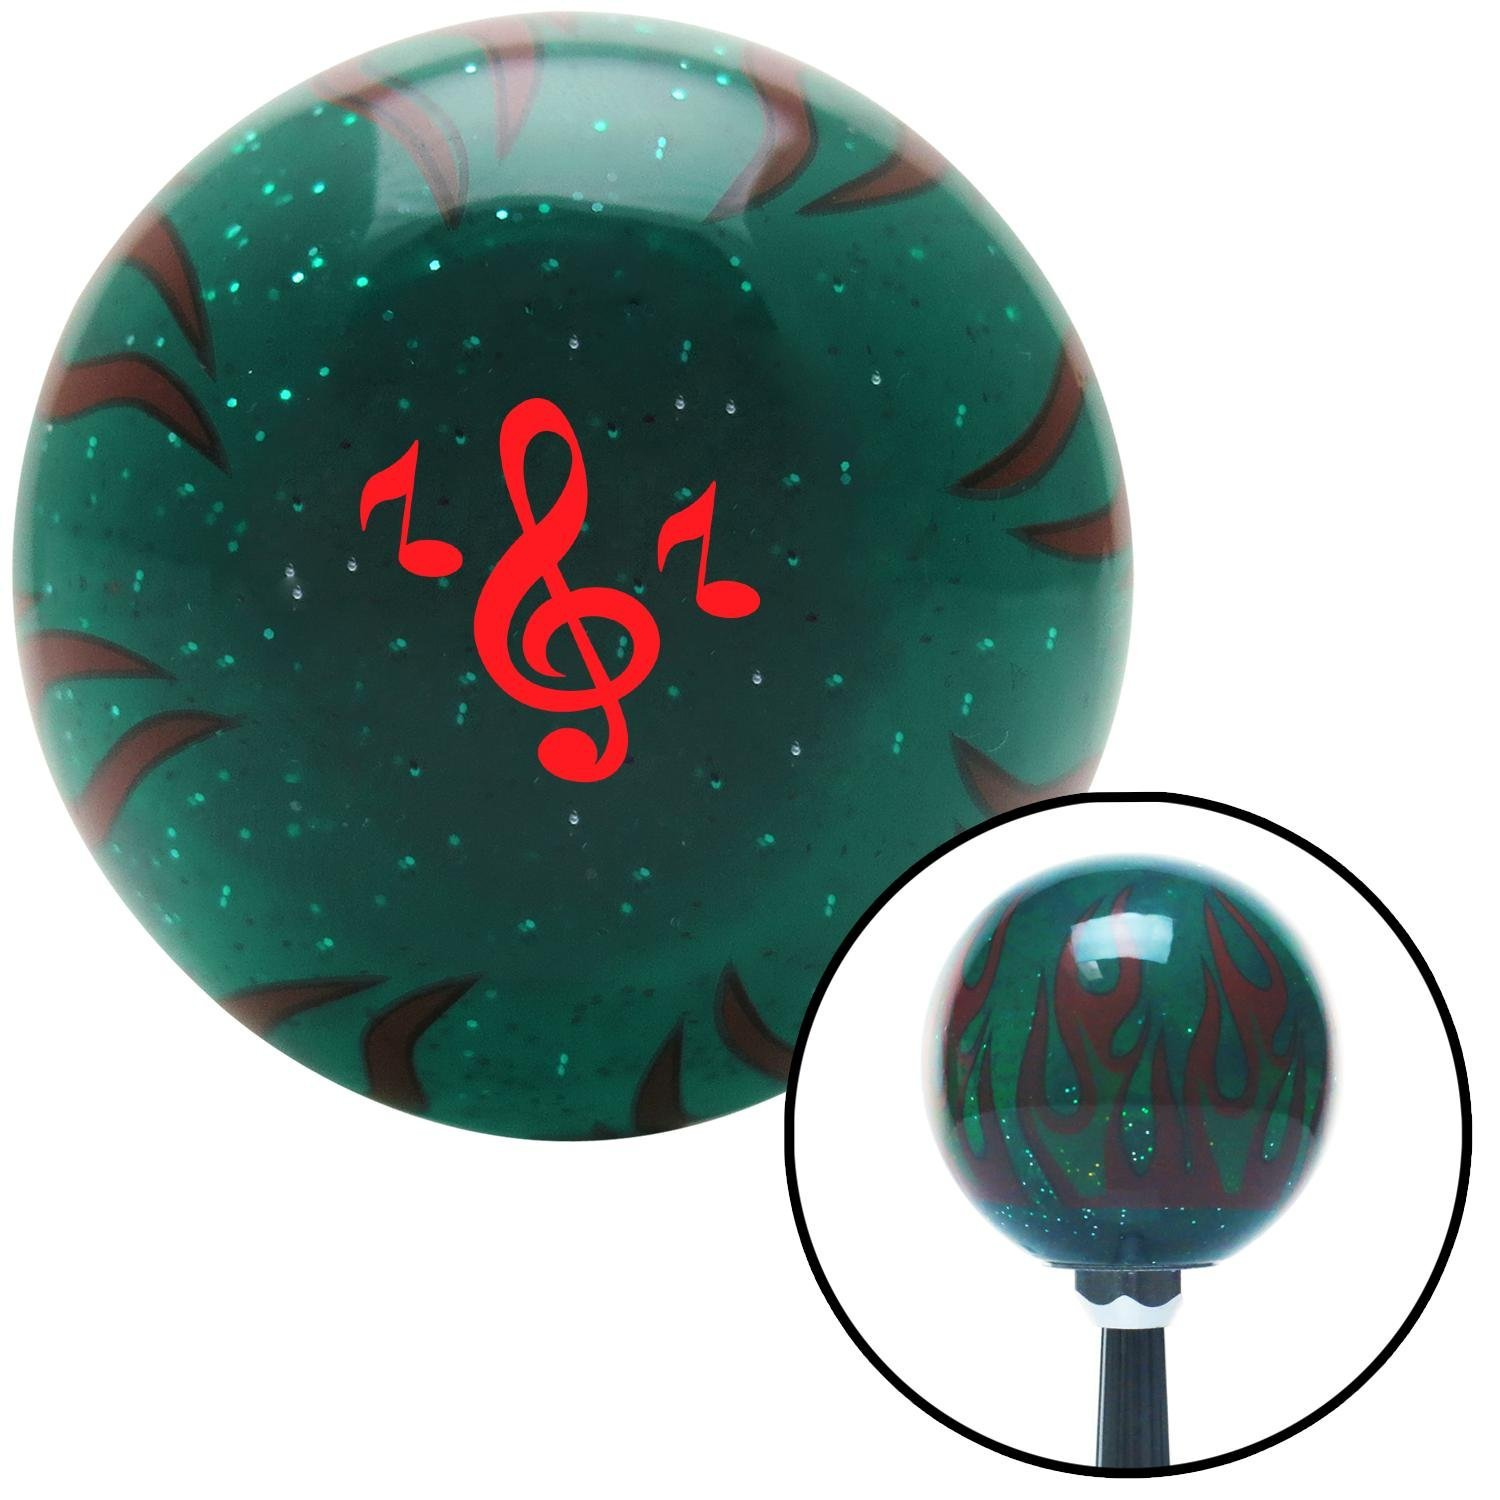 Red Treble Clef American Shifter 262870 Green Flame Metal Flake Shift Knob with M16 x 1.5 Insert